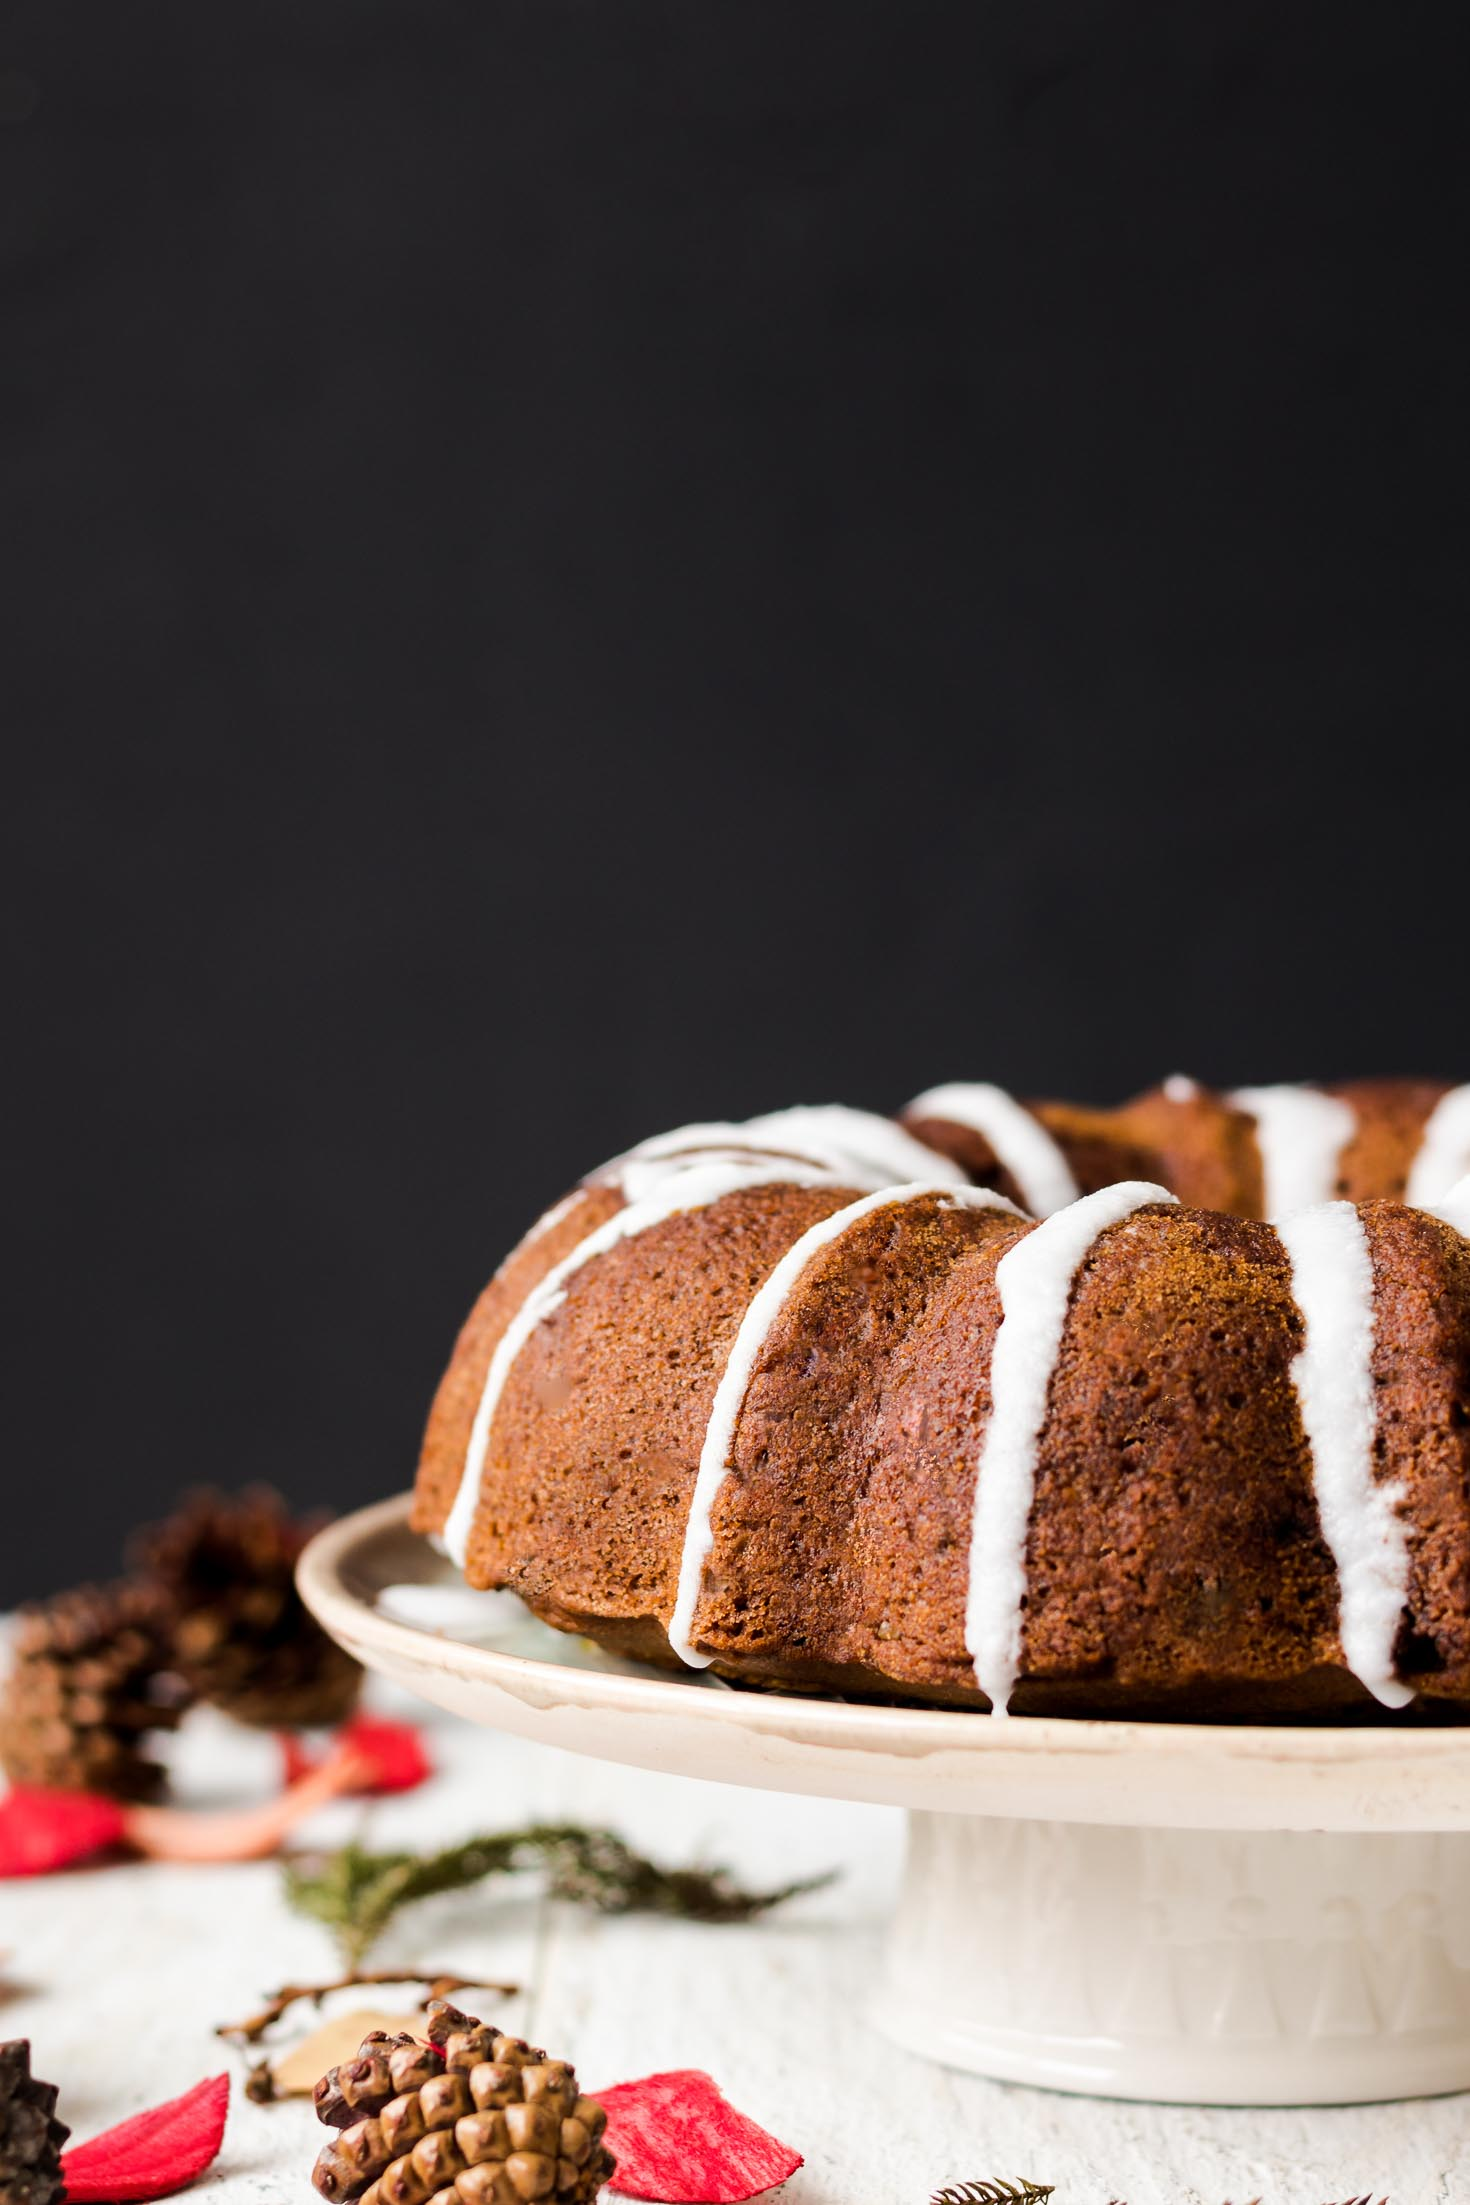 Banana Gingerbread Bundt Coffee Cake-side view-whole coffee cake is glazed with coconut glaze and is placed on a cake plate